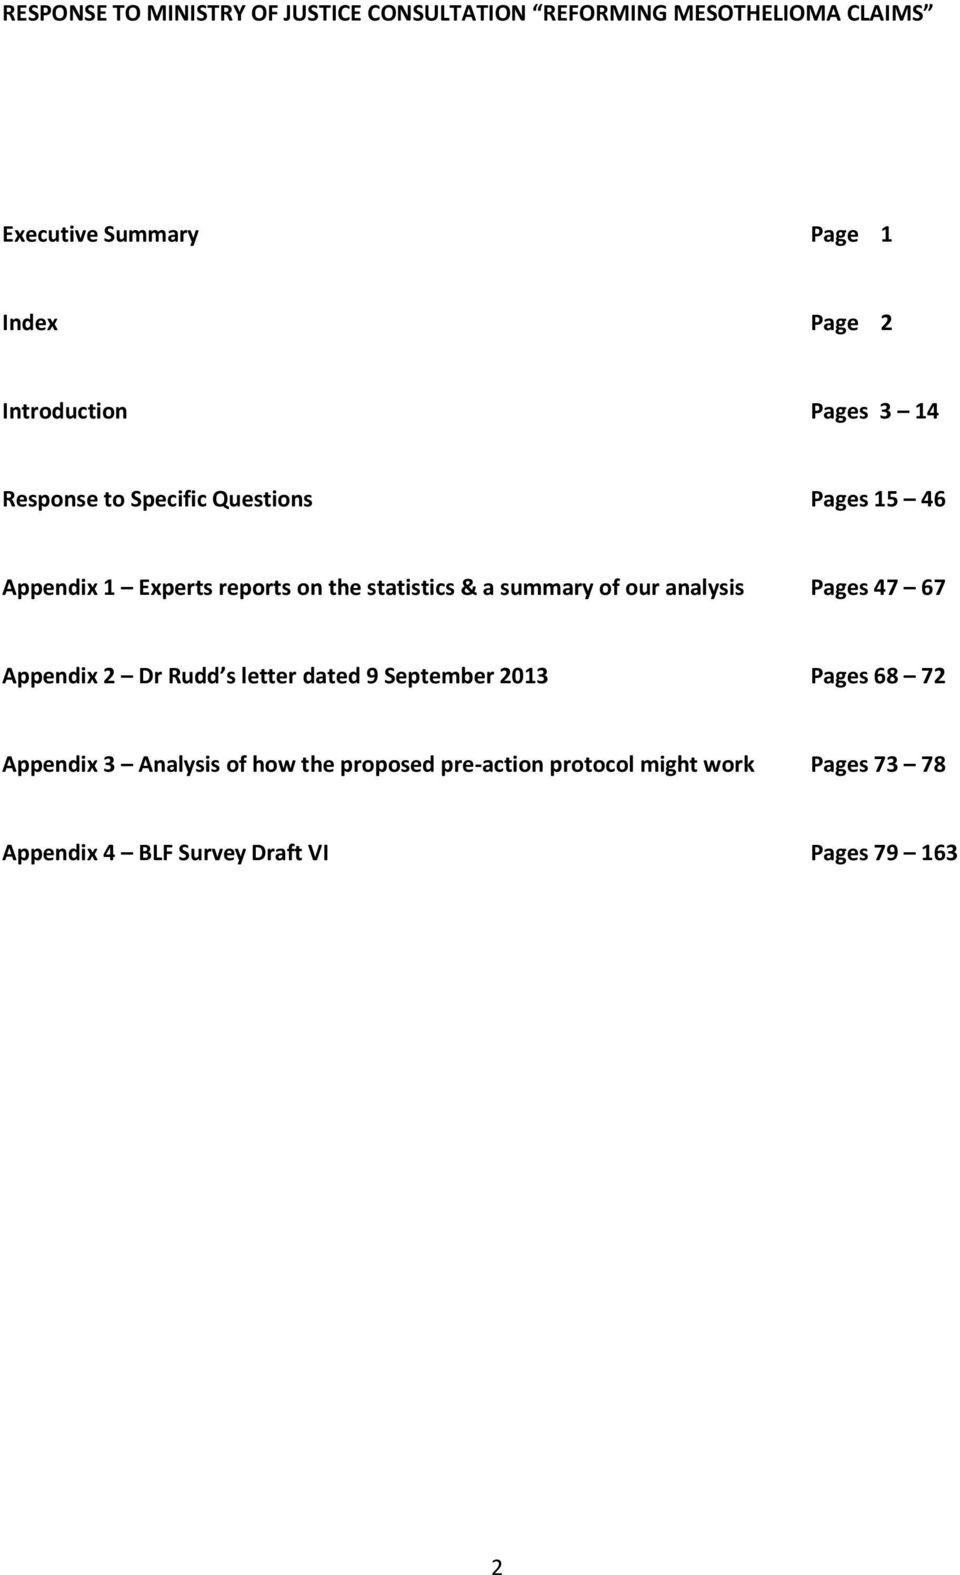 a summary of our analysis Pages 47 67 Appendix 2 Dr Rudd s letter dated 9 September 2013 Pages 68 72 Appendix 3